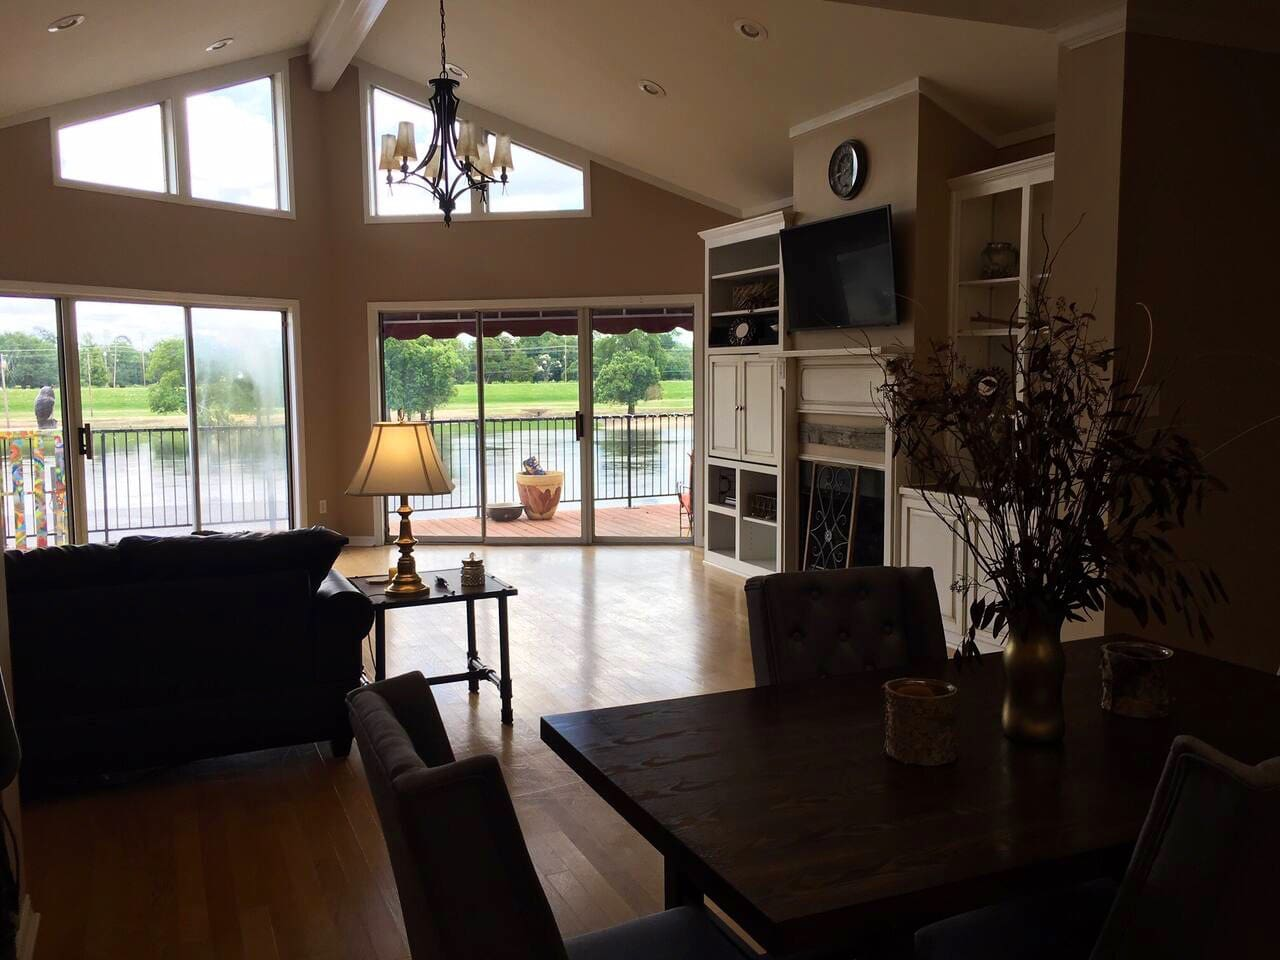 A view of the Ouachita River from the kitchen/living room.